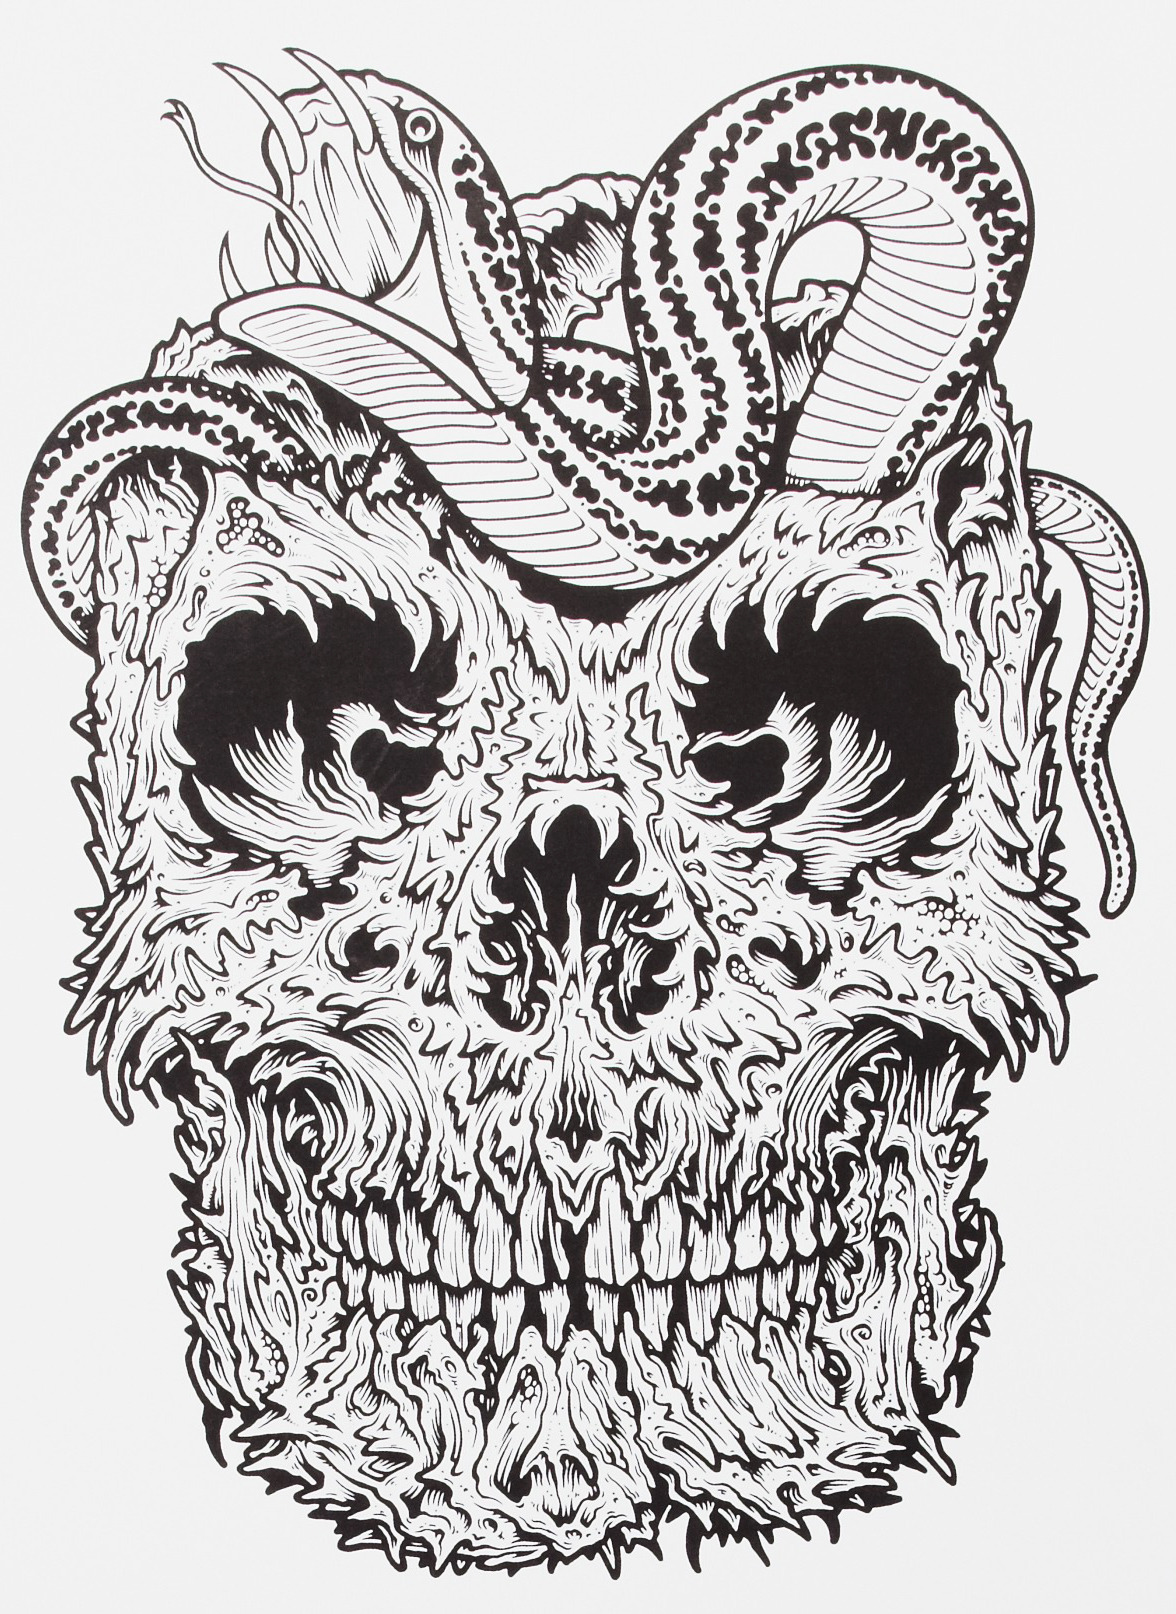 Here's a new sick piece by artist Mike Giant !  My mind is melting …  supersonicelectronic:  Mike Giant.